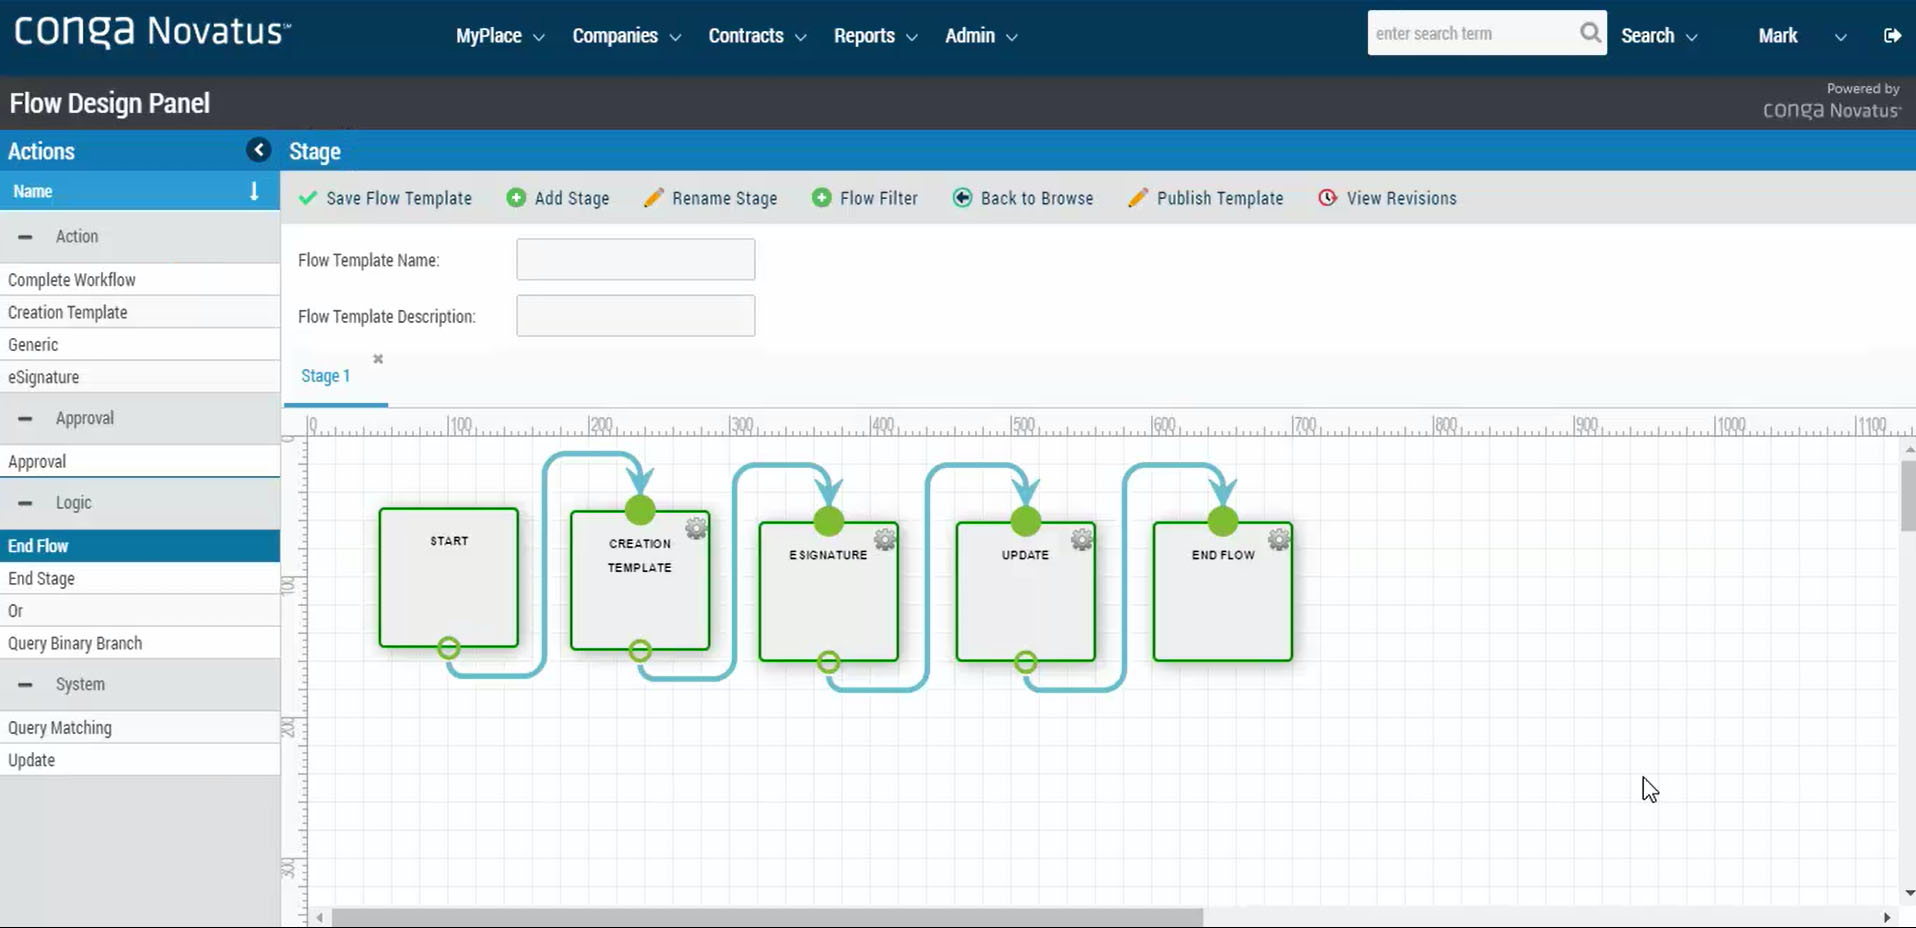 Extensive workflow capabilities to set and track approvals and contract routing .